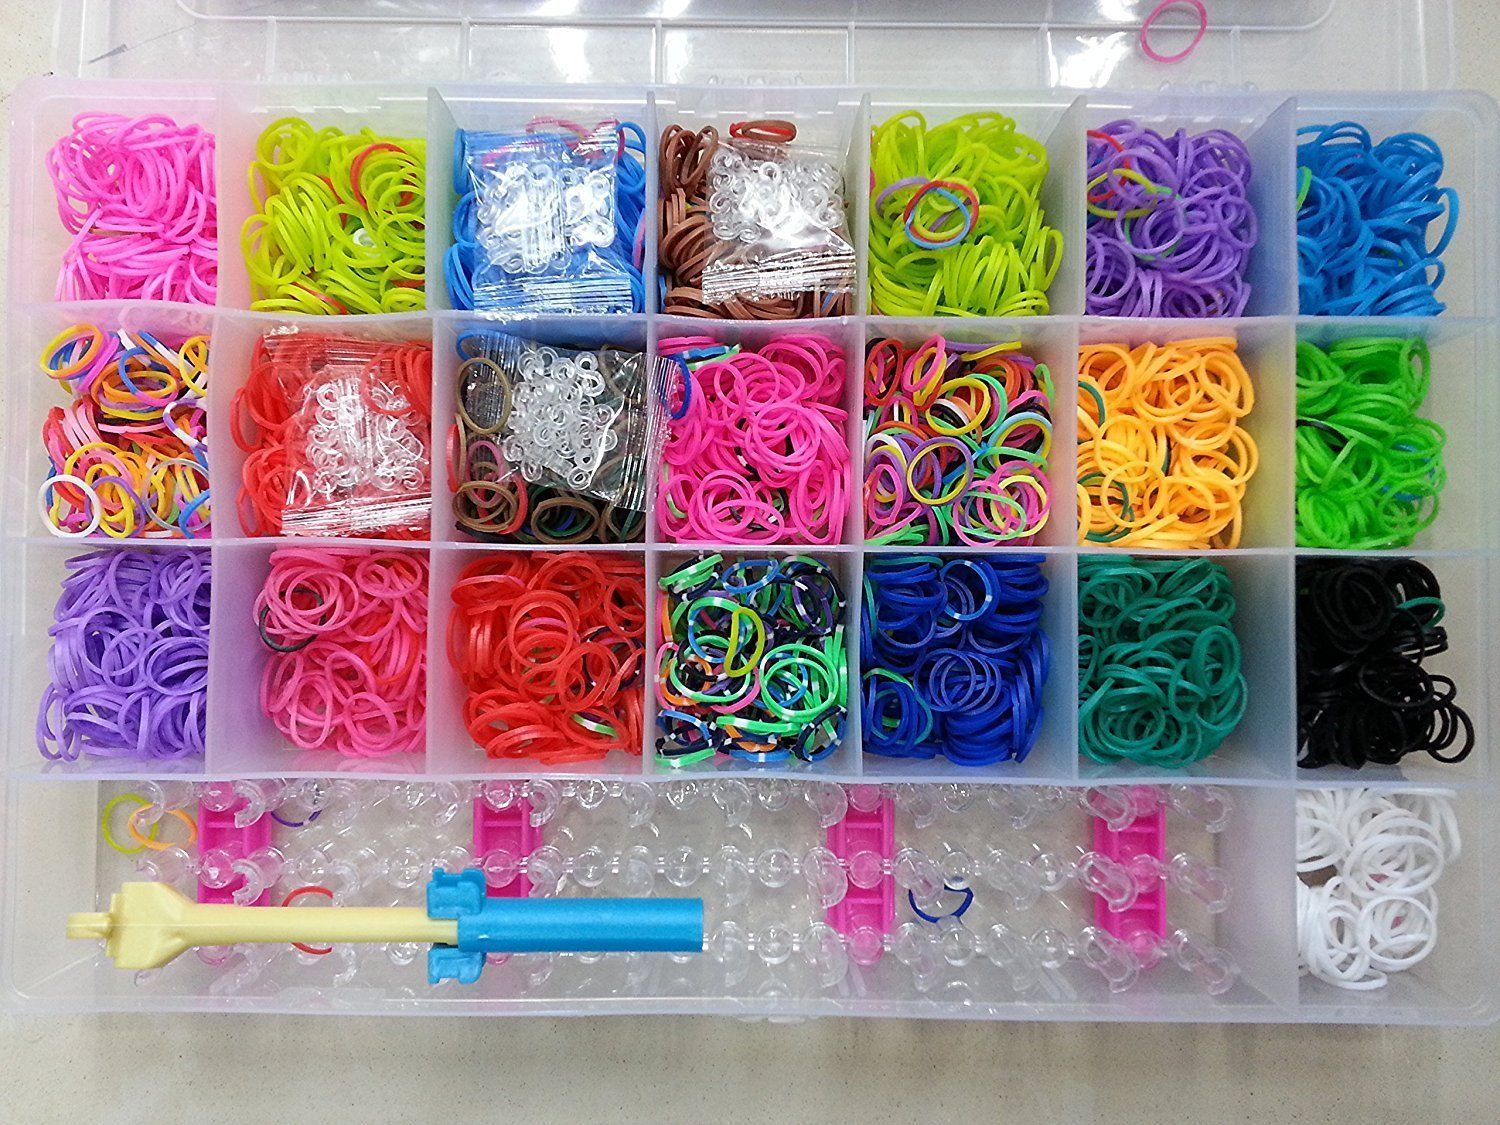 Gold Leaf Rainbow Color Diy Loom Band Kit With 4200 Colourful Rubber Bands Amazon In Home Kitchen Loom Bands Rainbow Colors Color